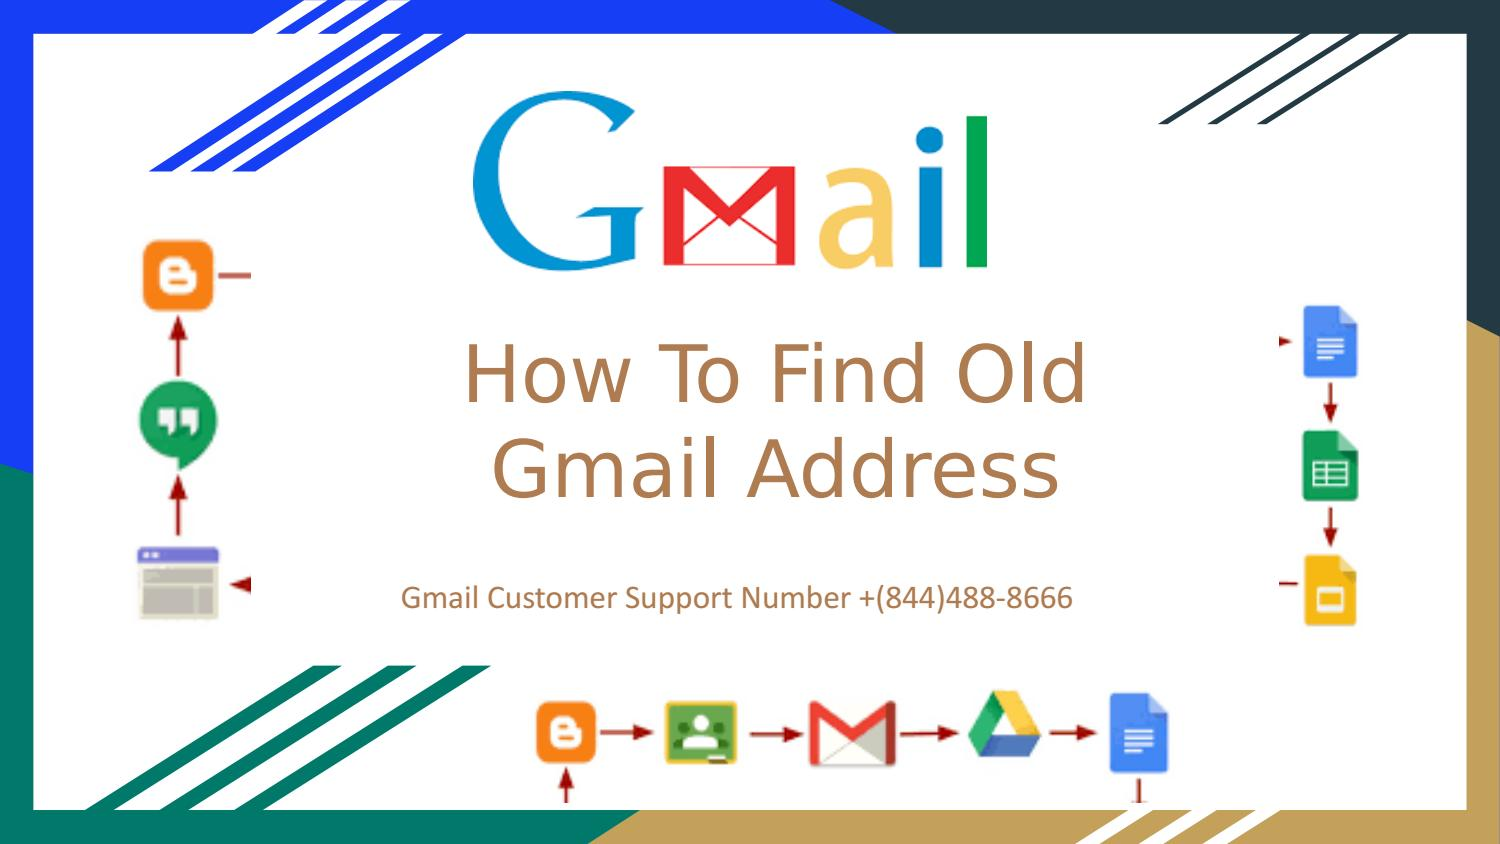 How To Find Old Gmail Address